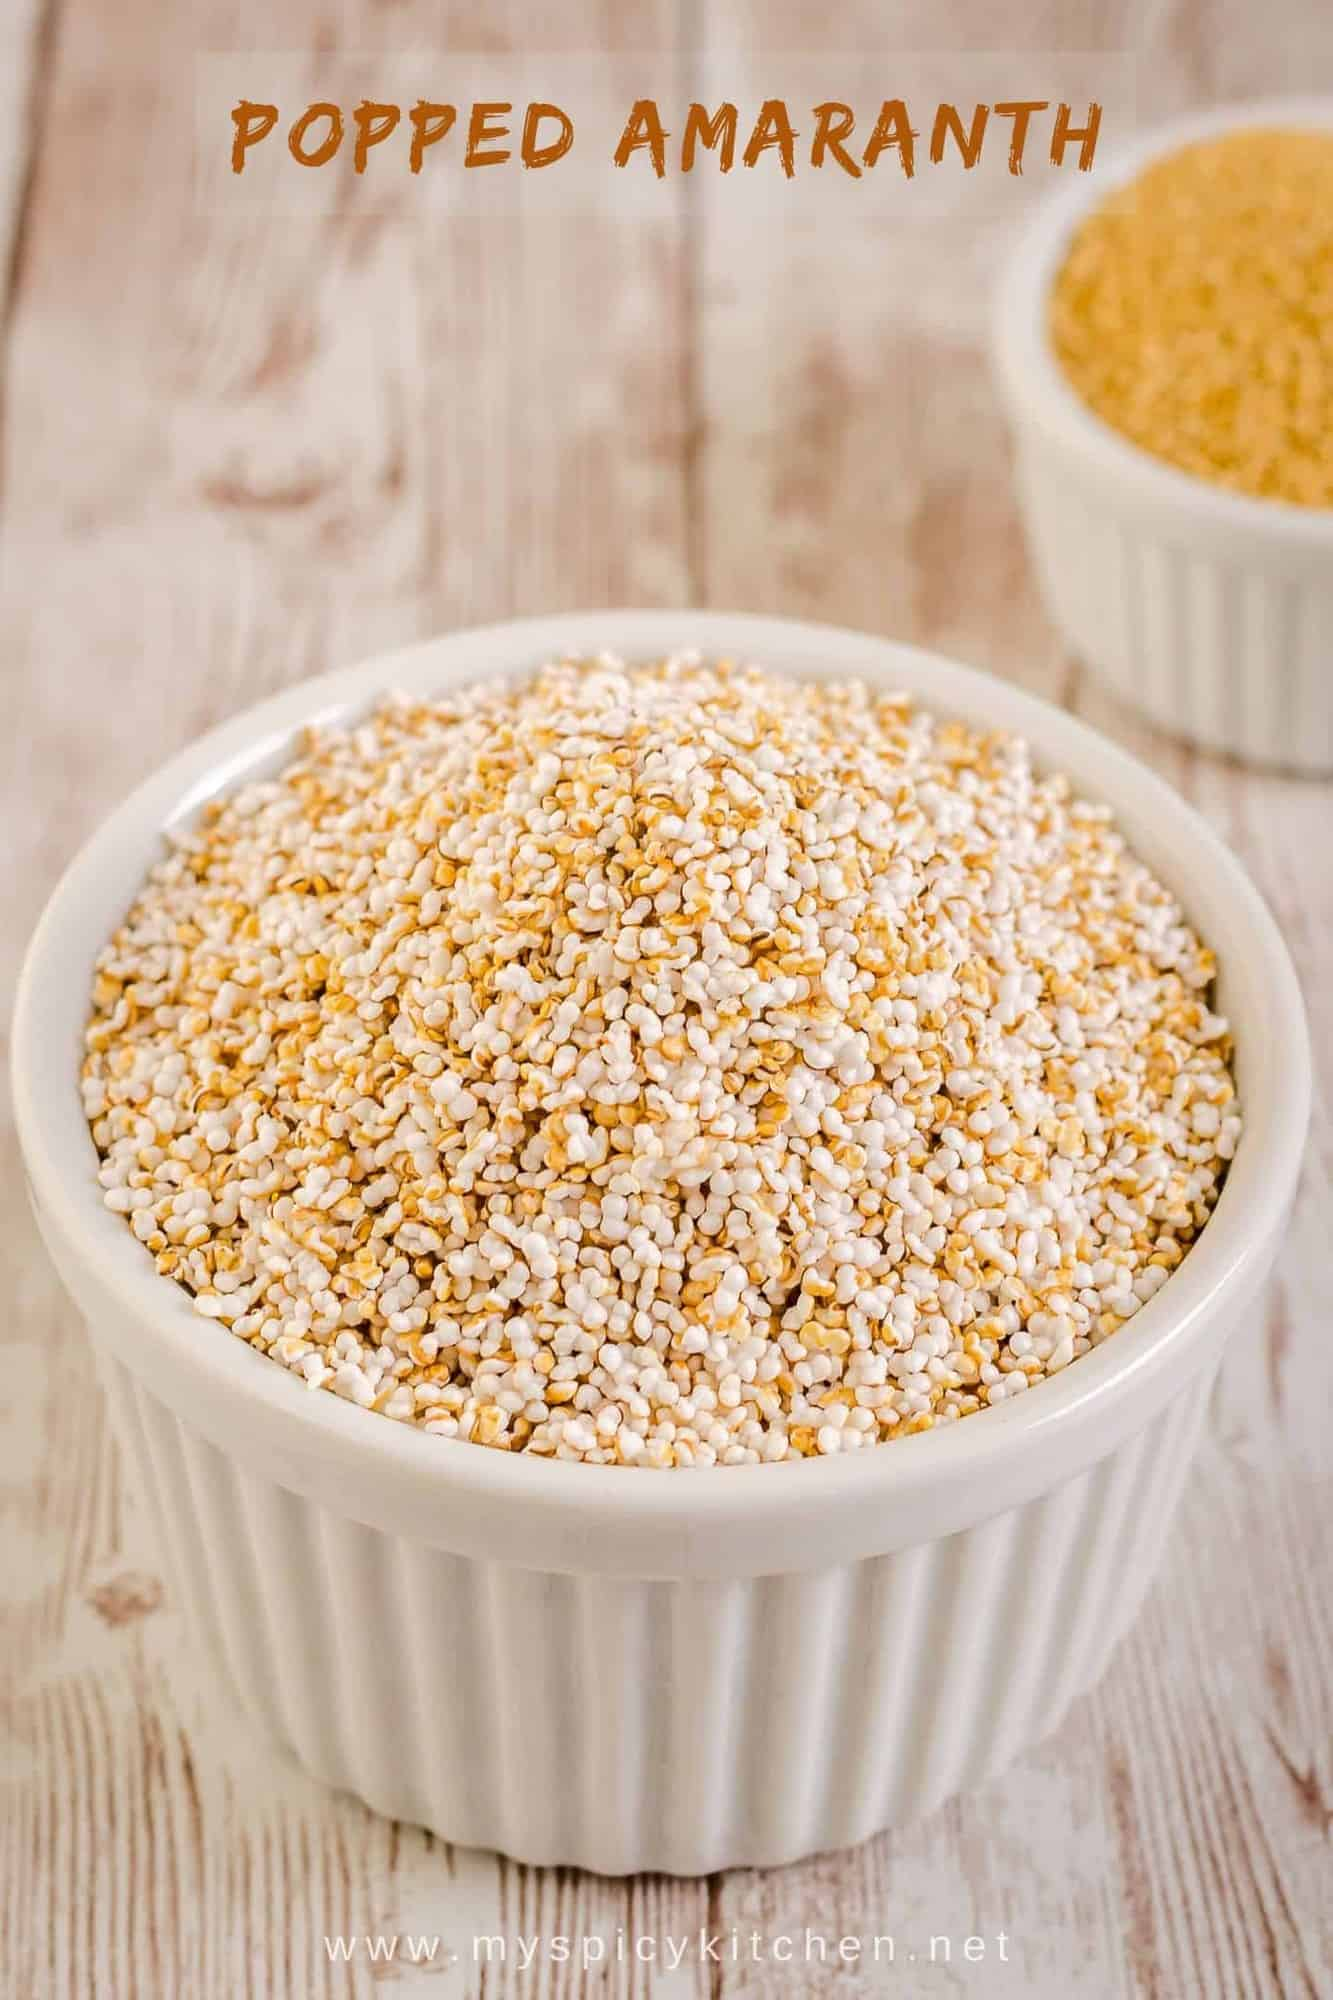 Bowl of popped amaranth